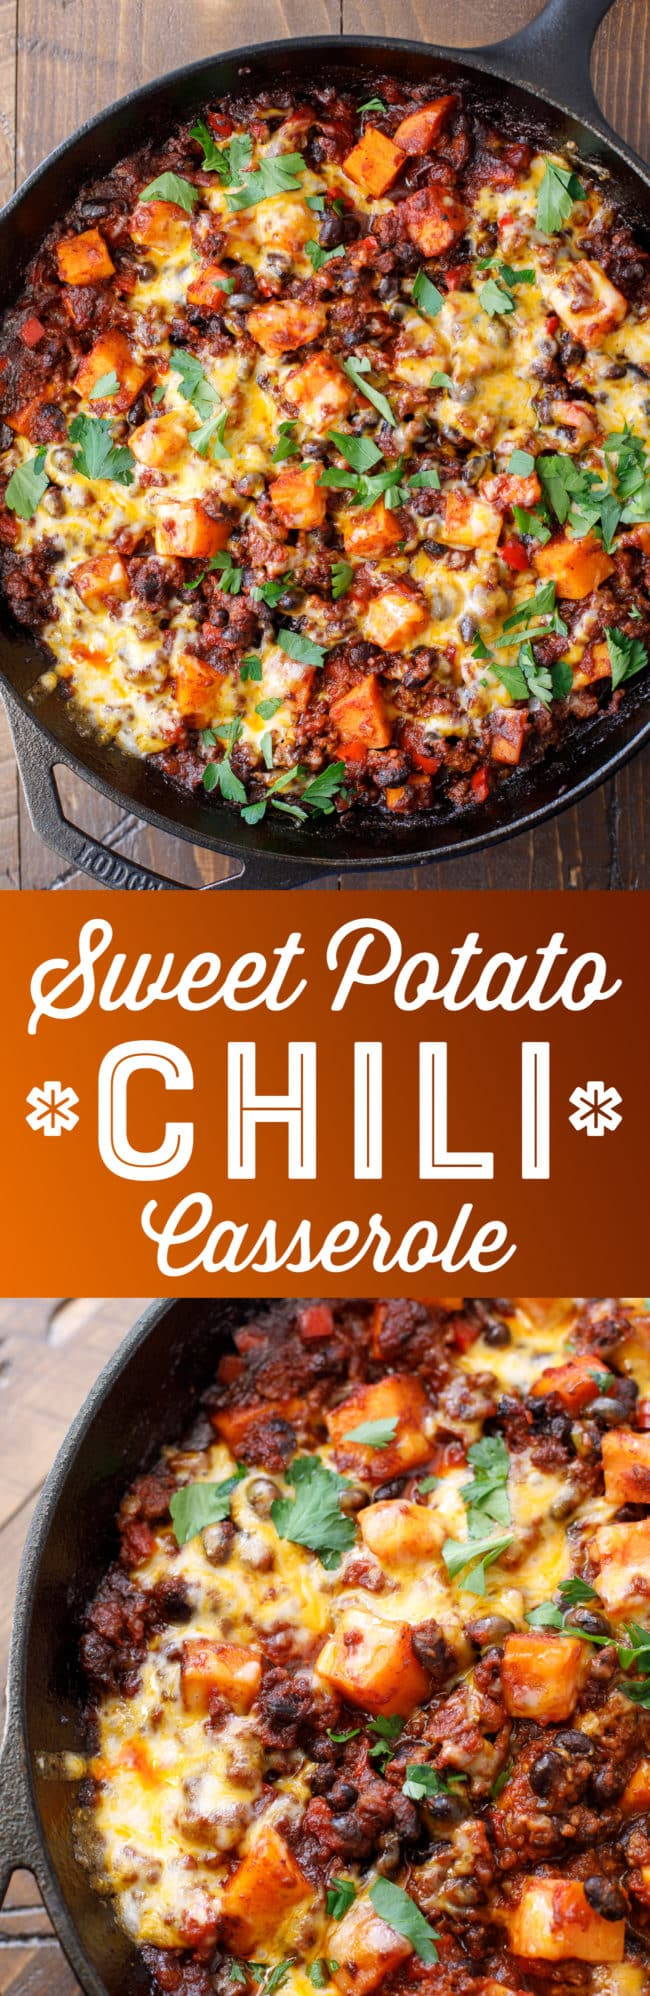 Sweet Potato Chili Casserole Recipe - Easy Skillet Chili - Sweet Potato Chili with Ground Beef #casserole #chili